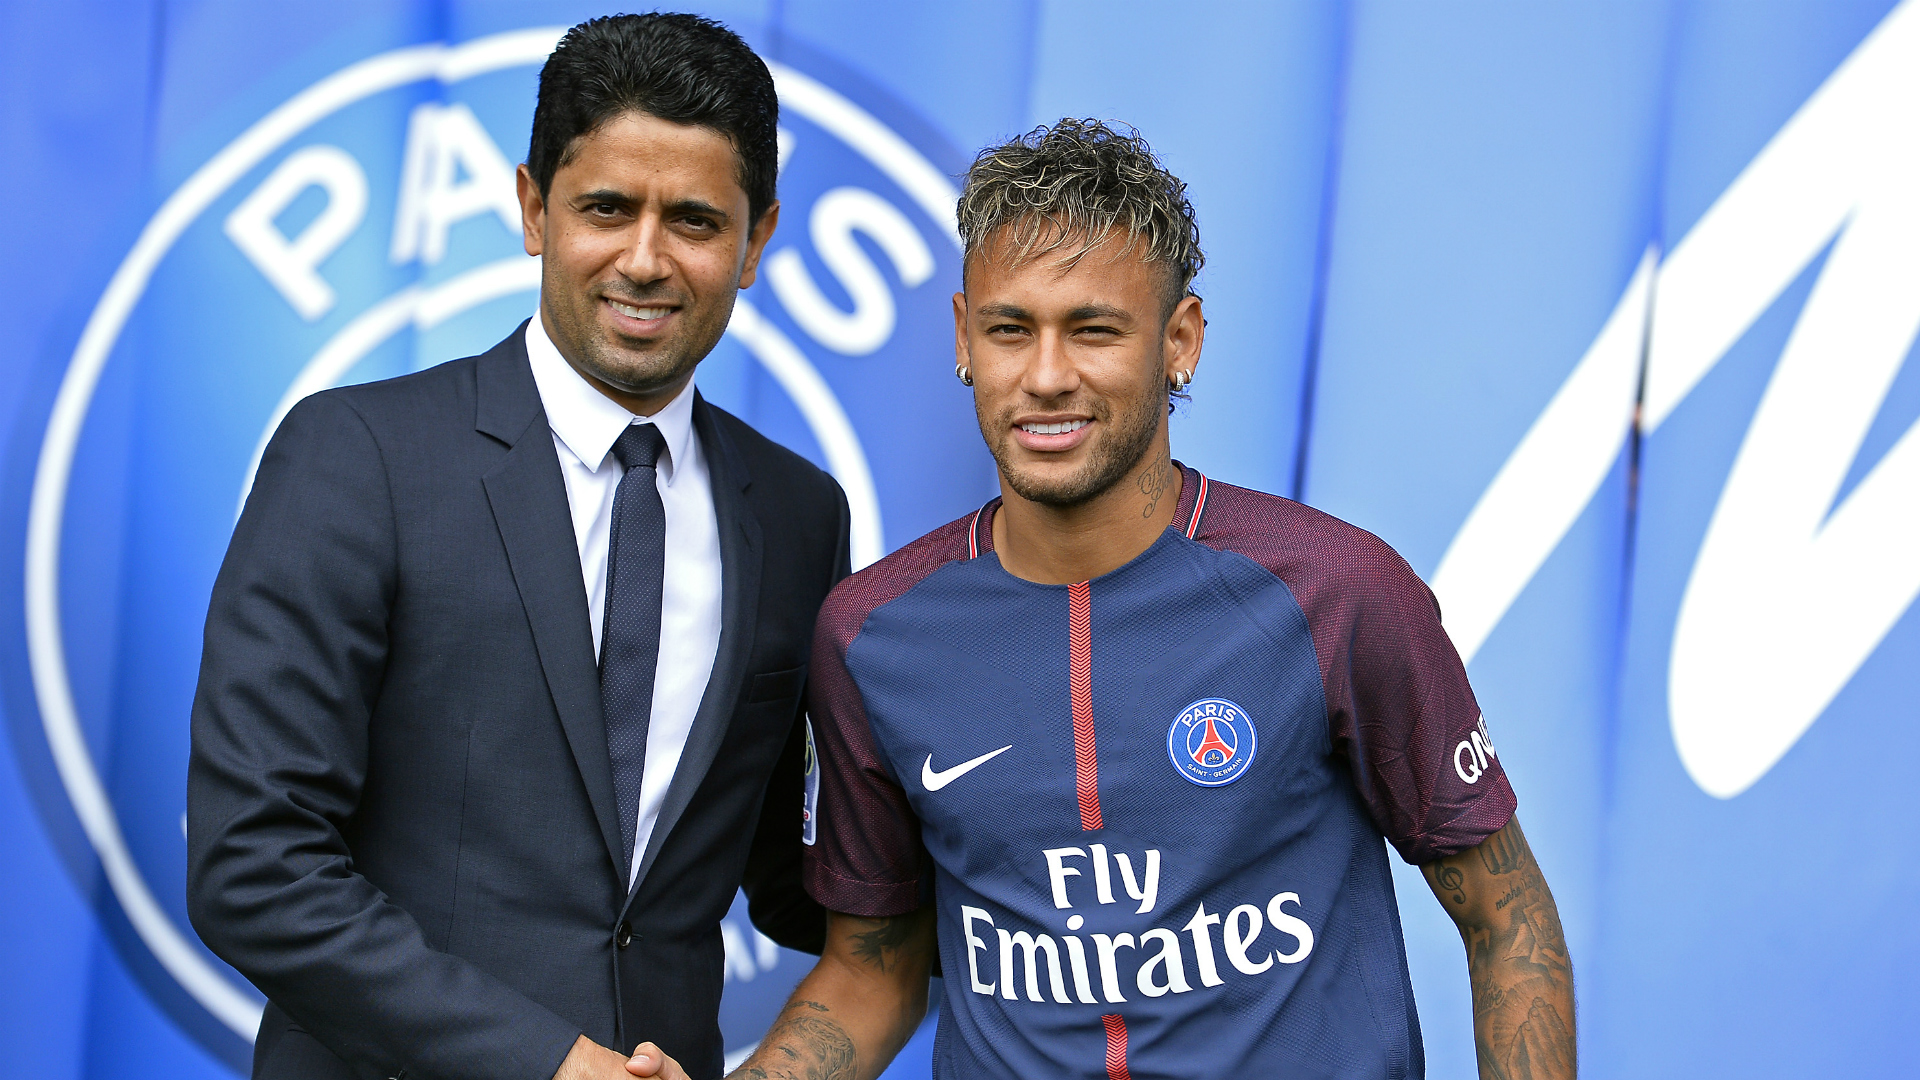 PSG striker Neymar parties in Saint-Tropez after record move from Barcelona